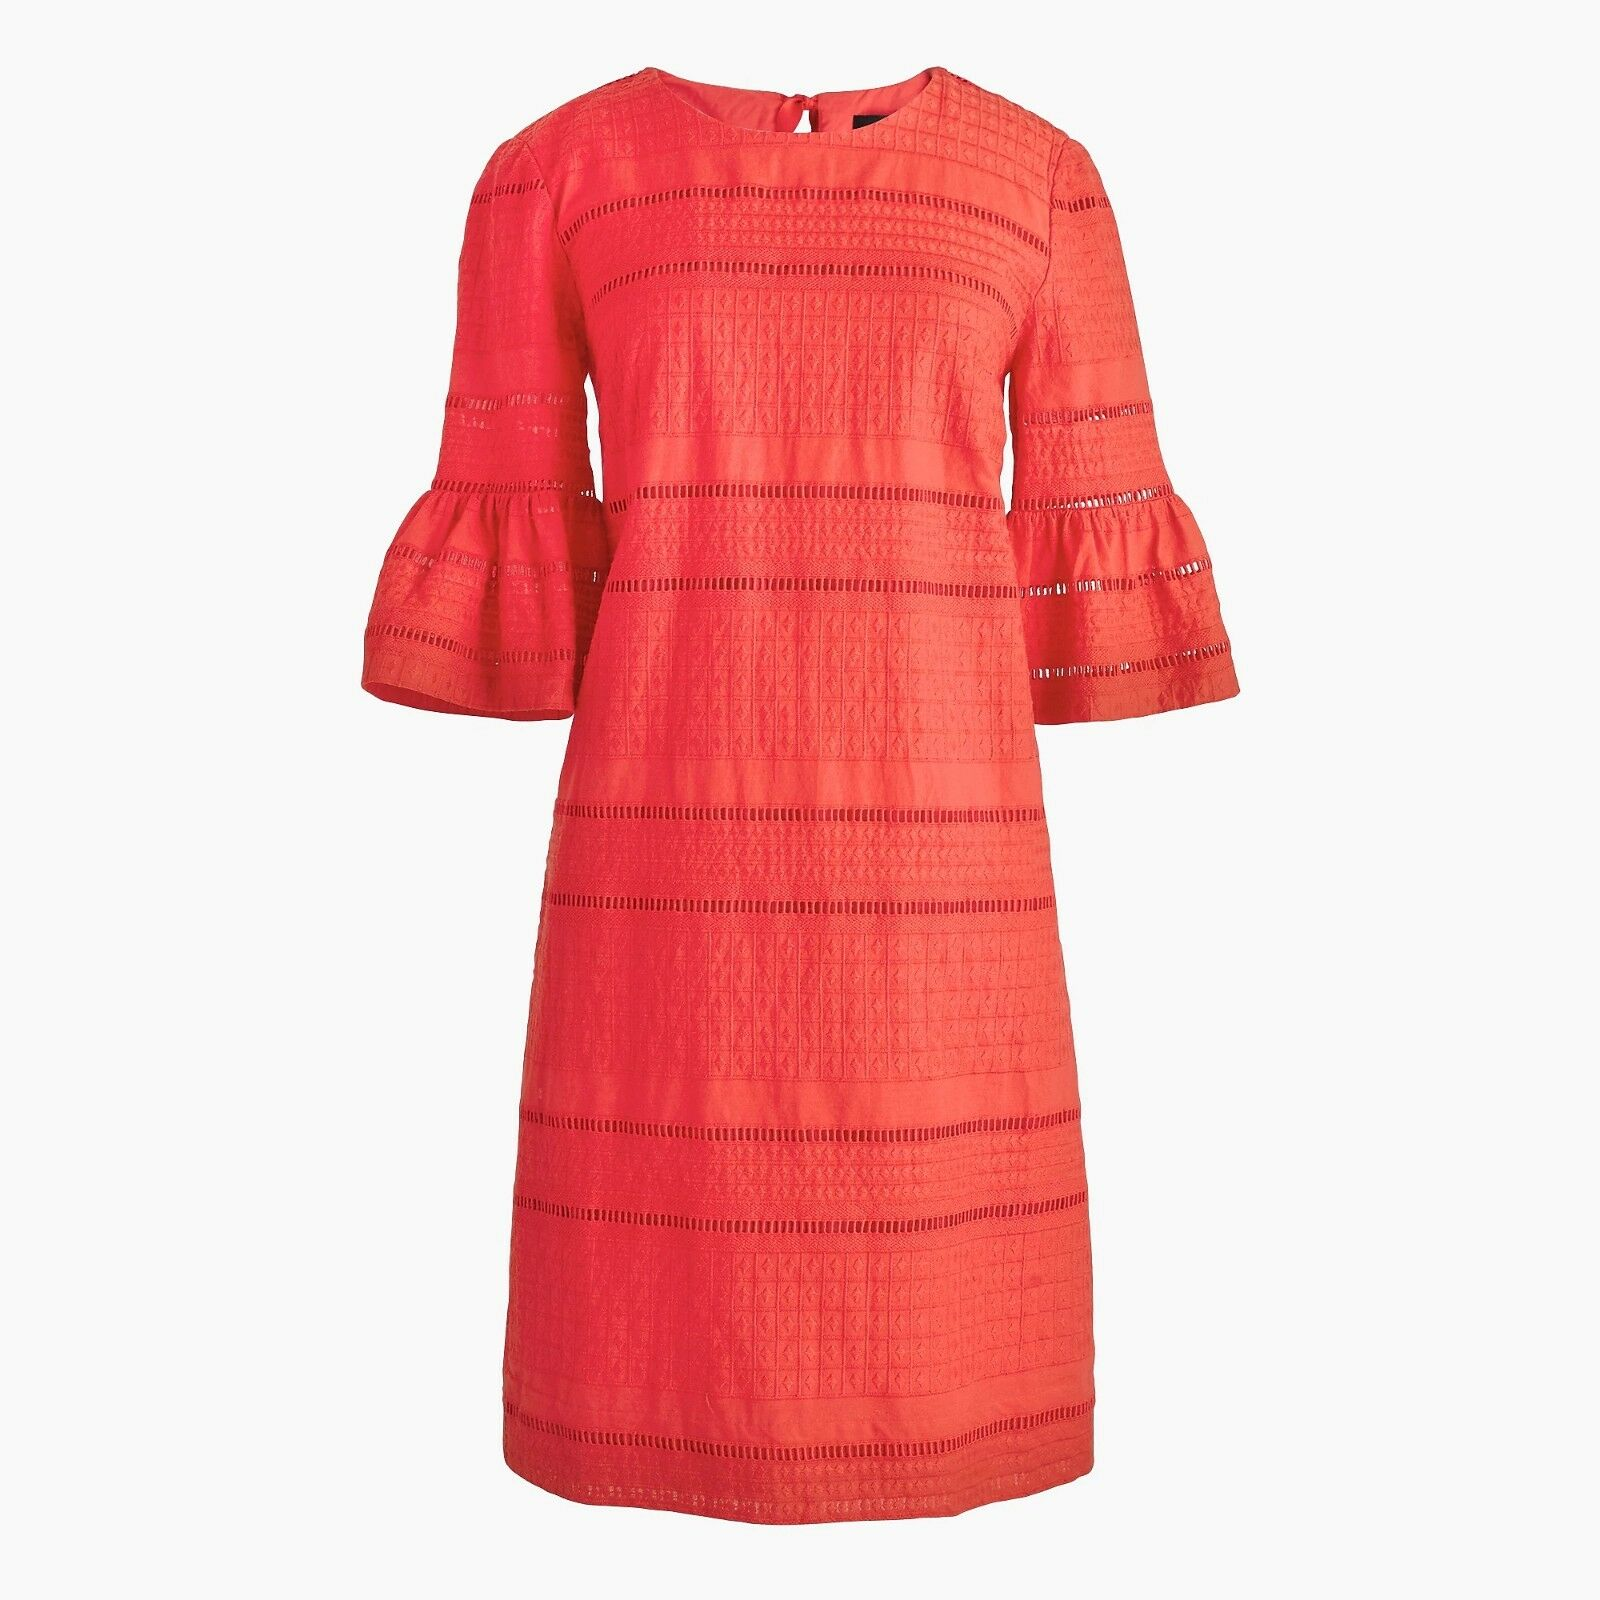 NWT J CREW Coral FLUTTER SLEEVE SHIFT DRESS IN EYELET Sz 4 Style G1269